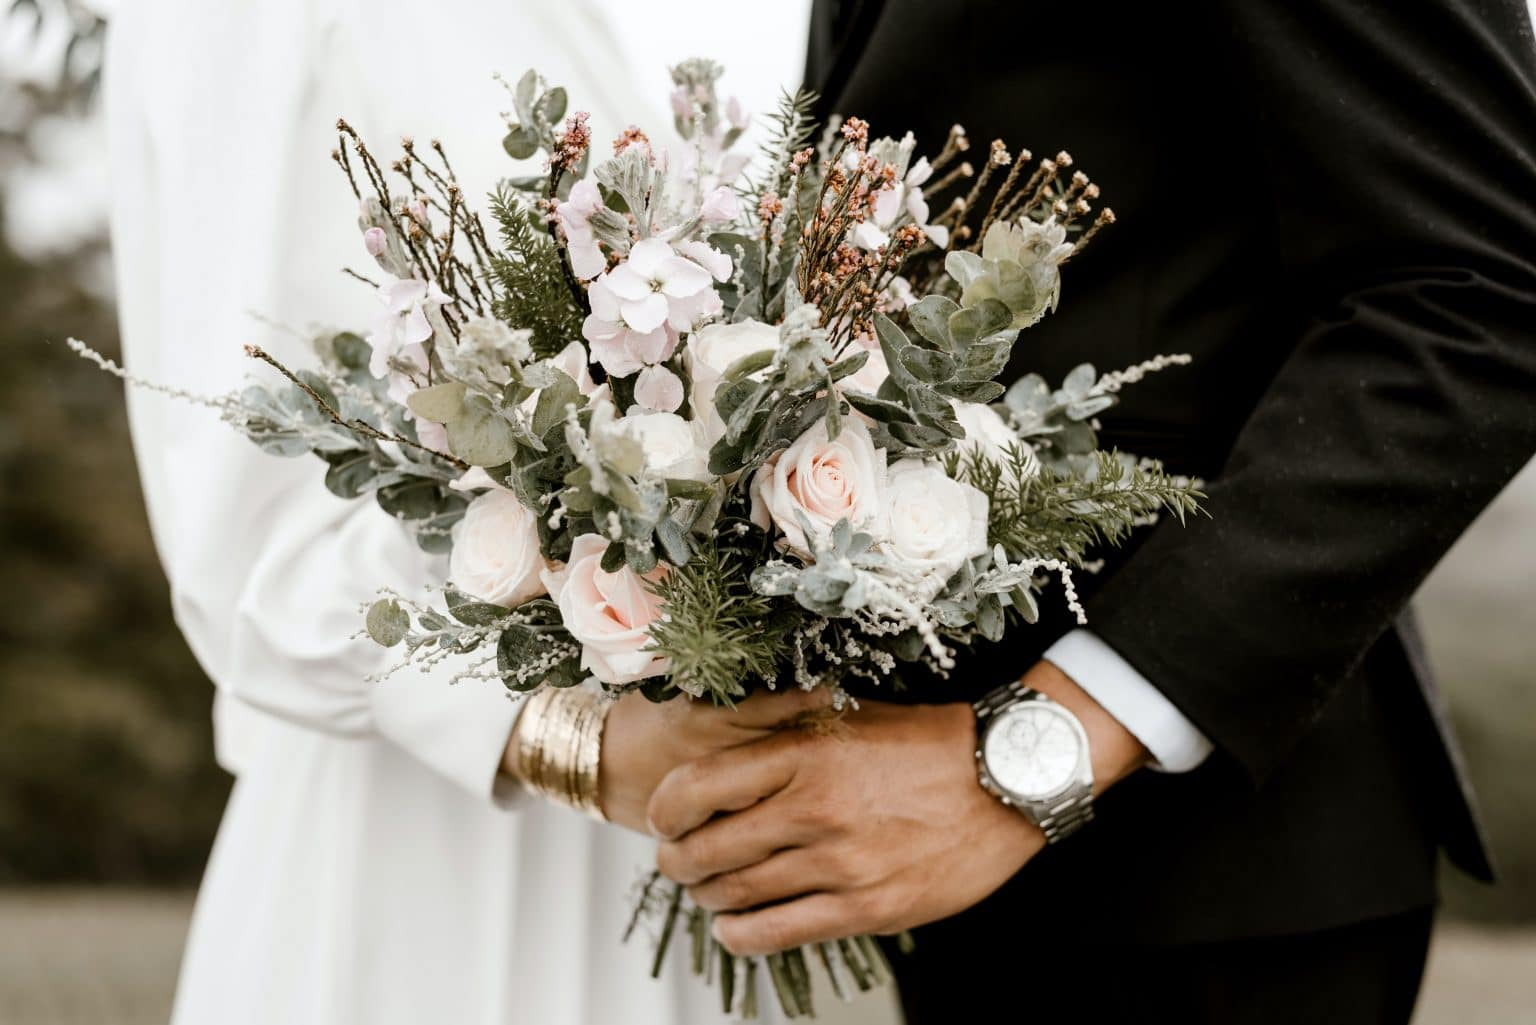 bridge-and-groom-standing-while-holding-flower-bouquet-2959192